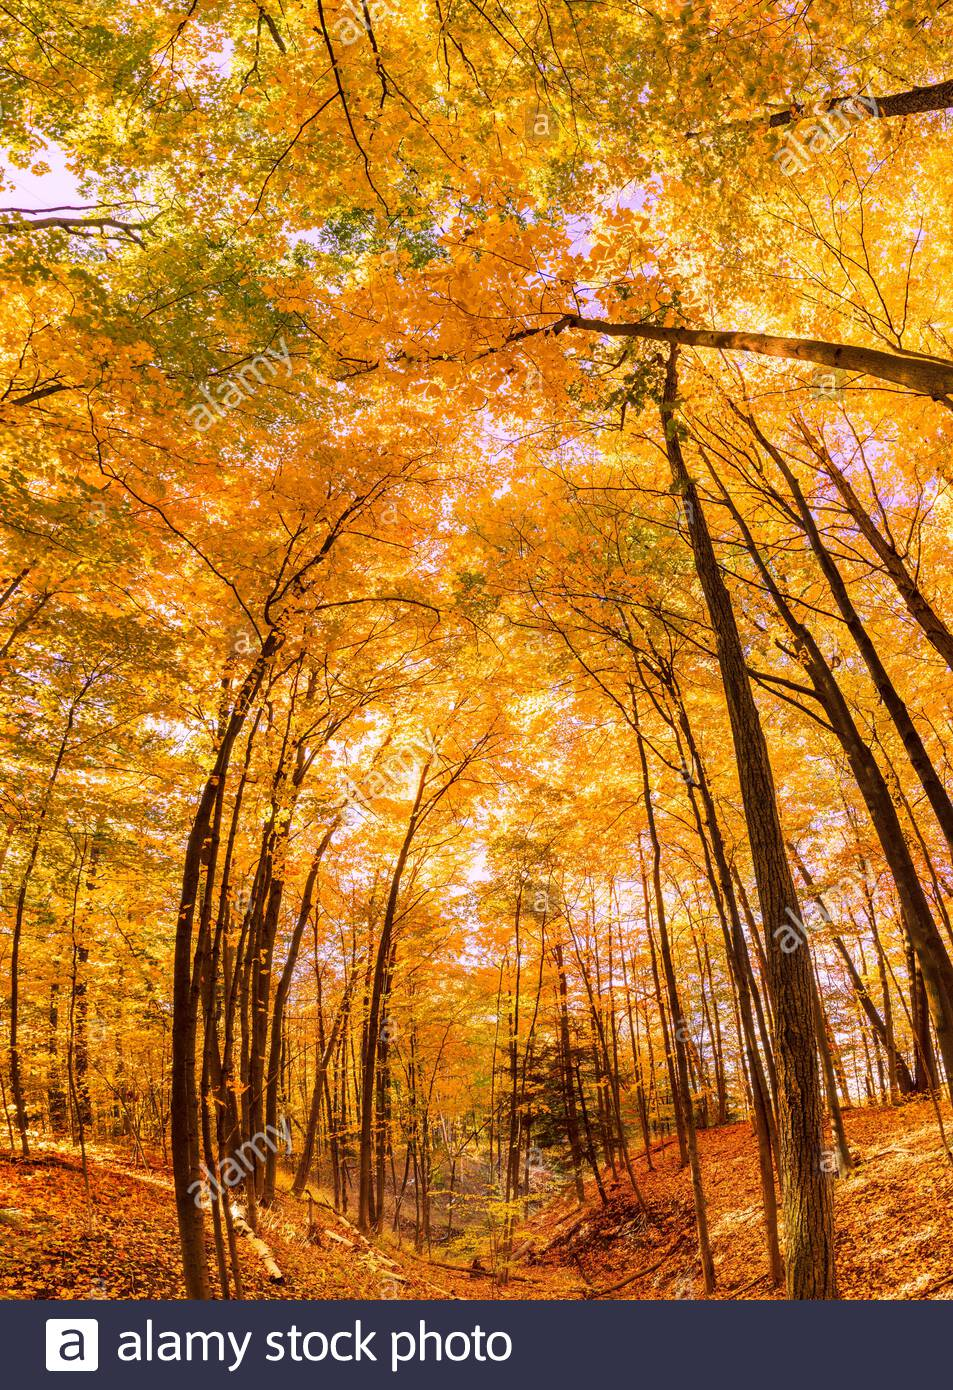 autumn-fall-deciduous-carolinian-forest-